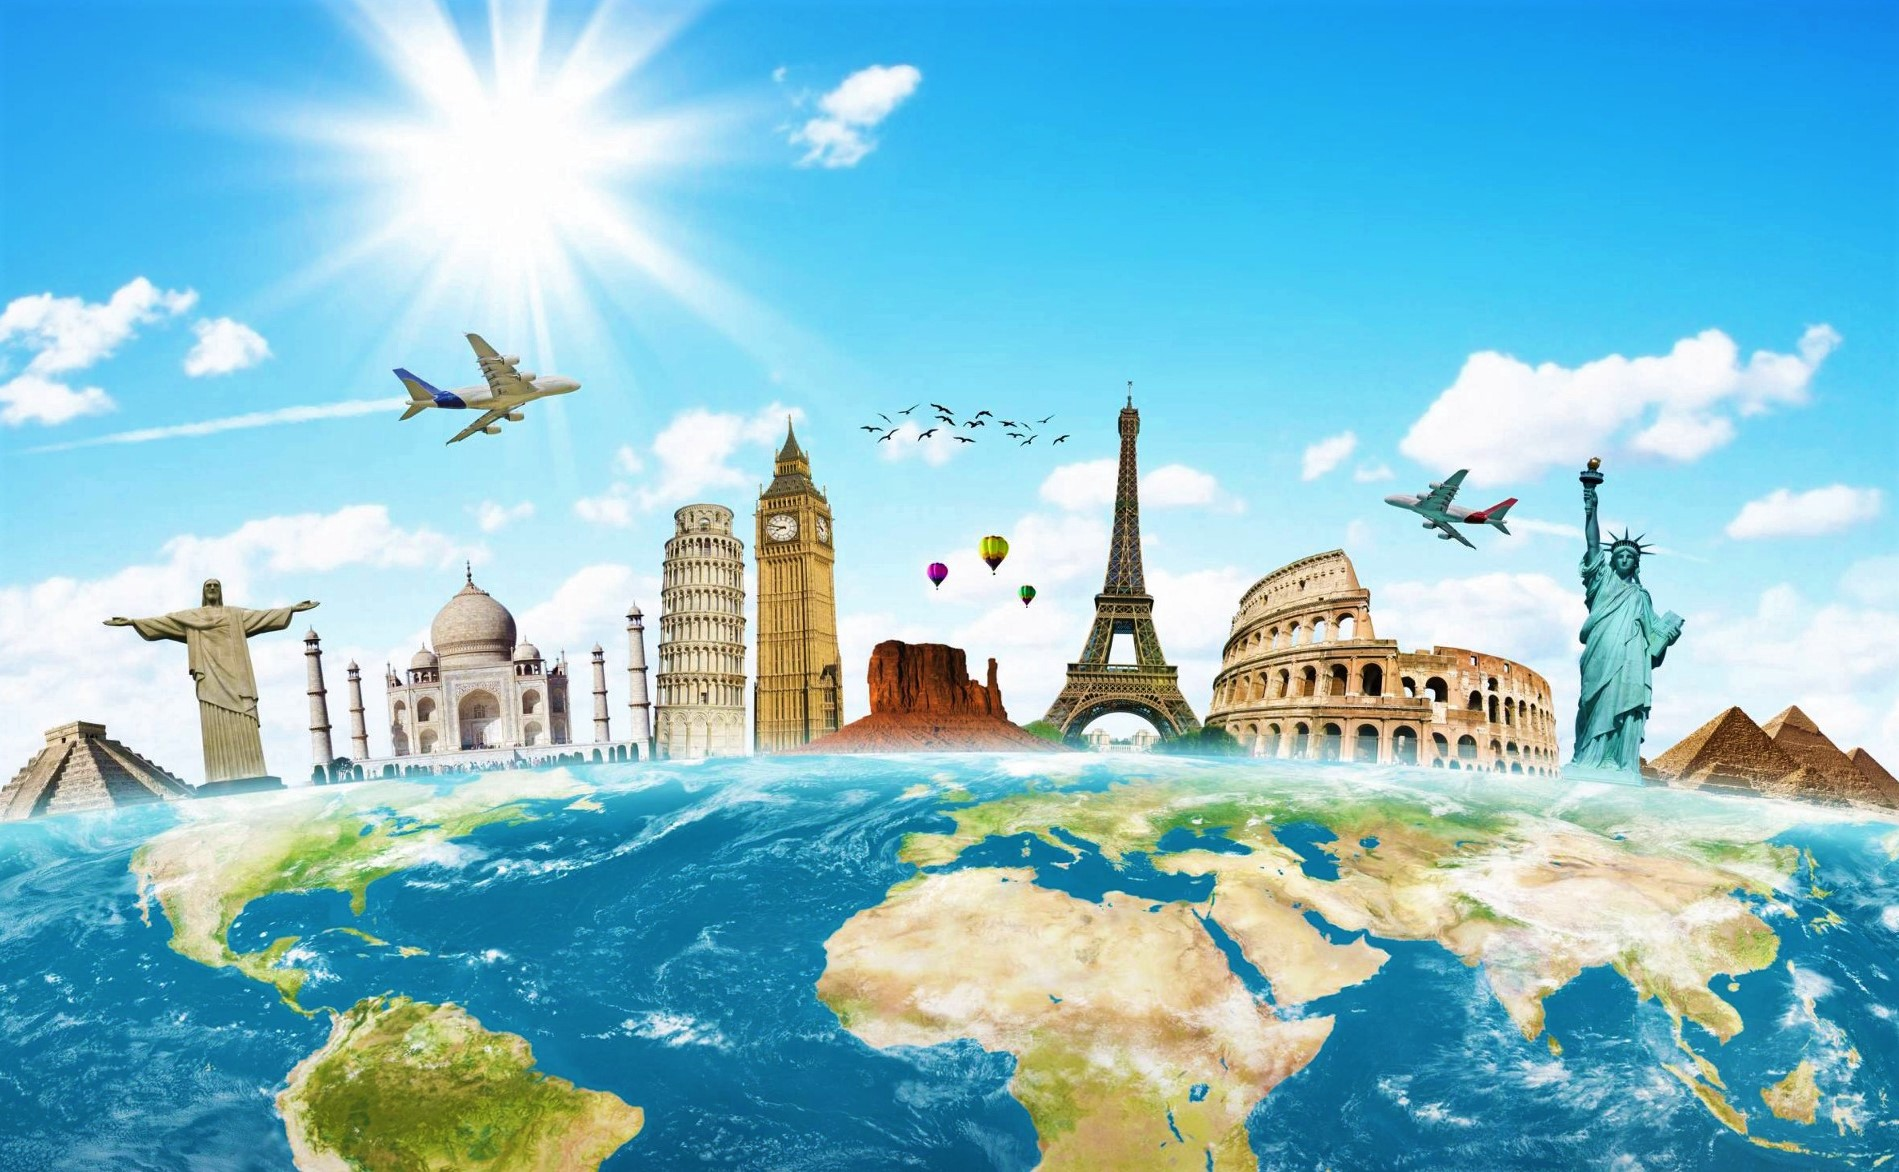 Travel Agency - Ideas on How to Start a Small Business in Indonesia